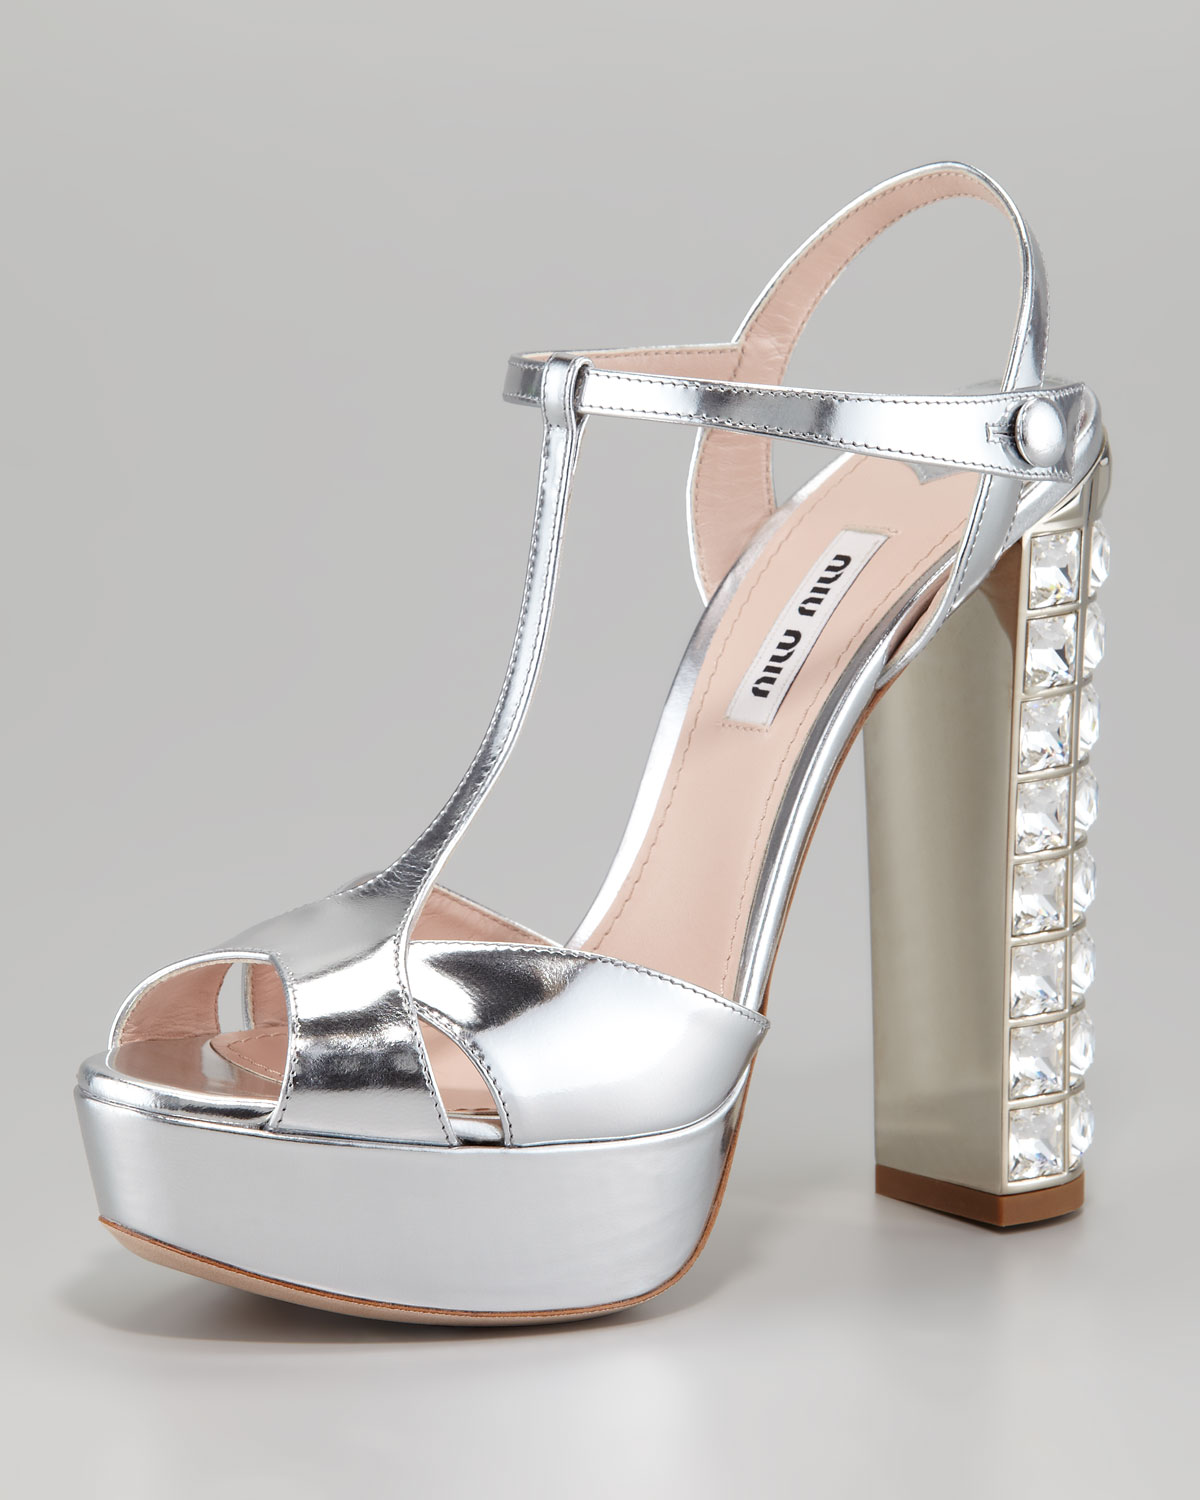 79b8d6819106 Miu Miu Jeweled Heel Sandal in Metallic - Lyst